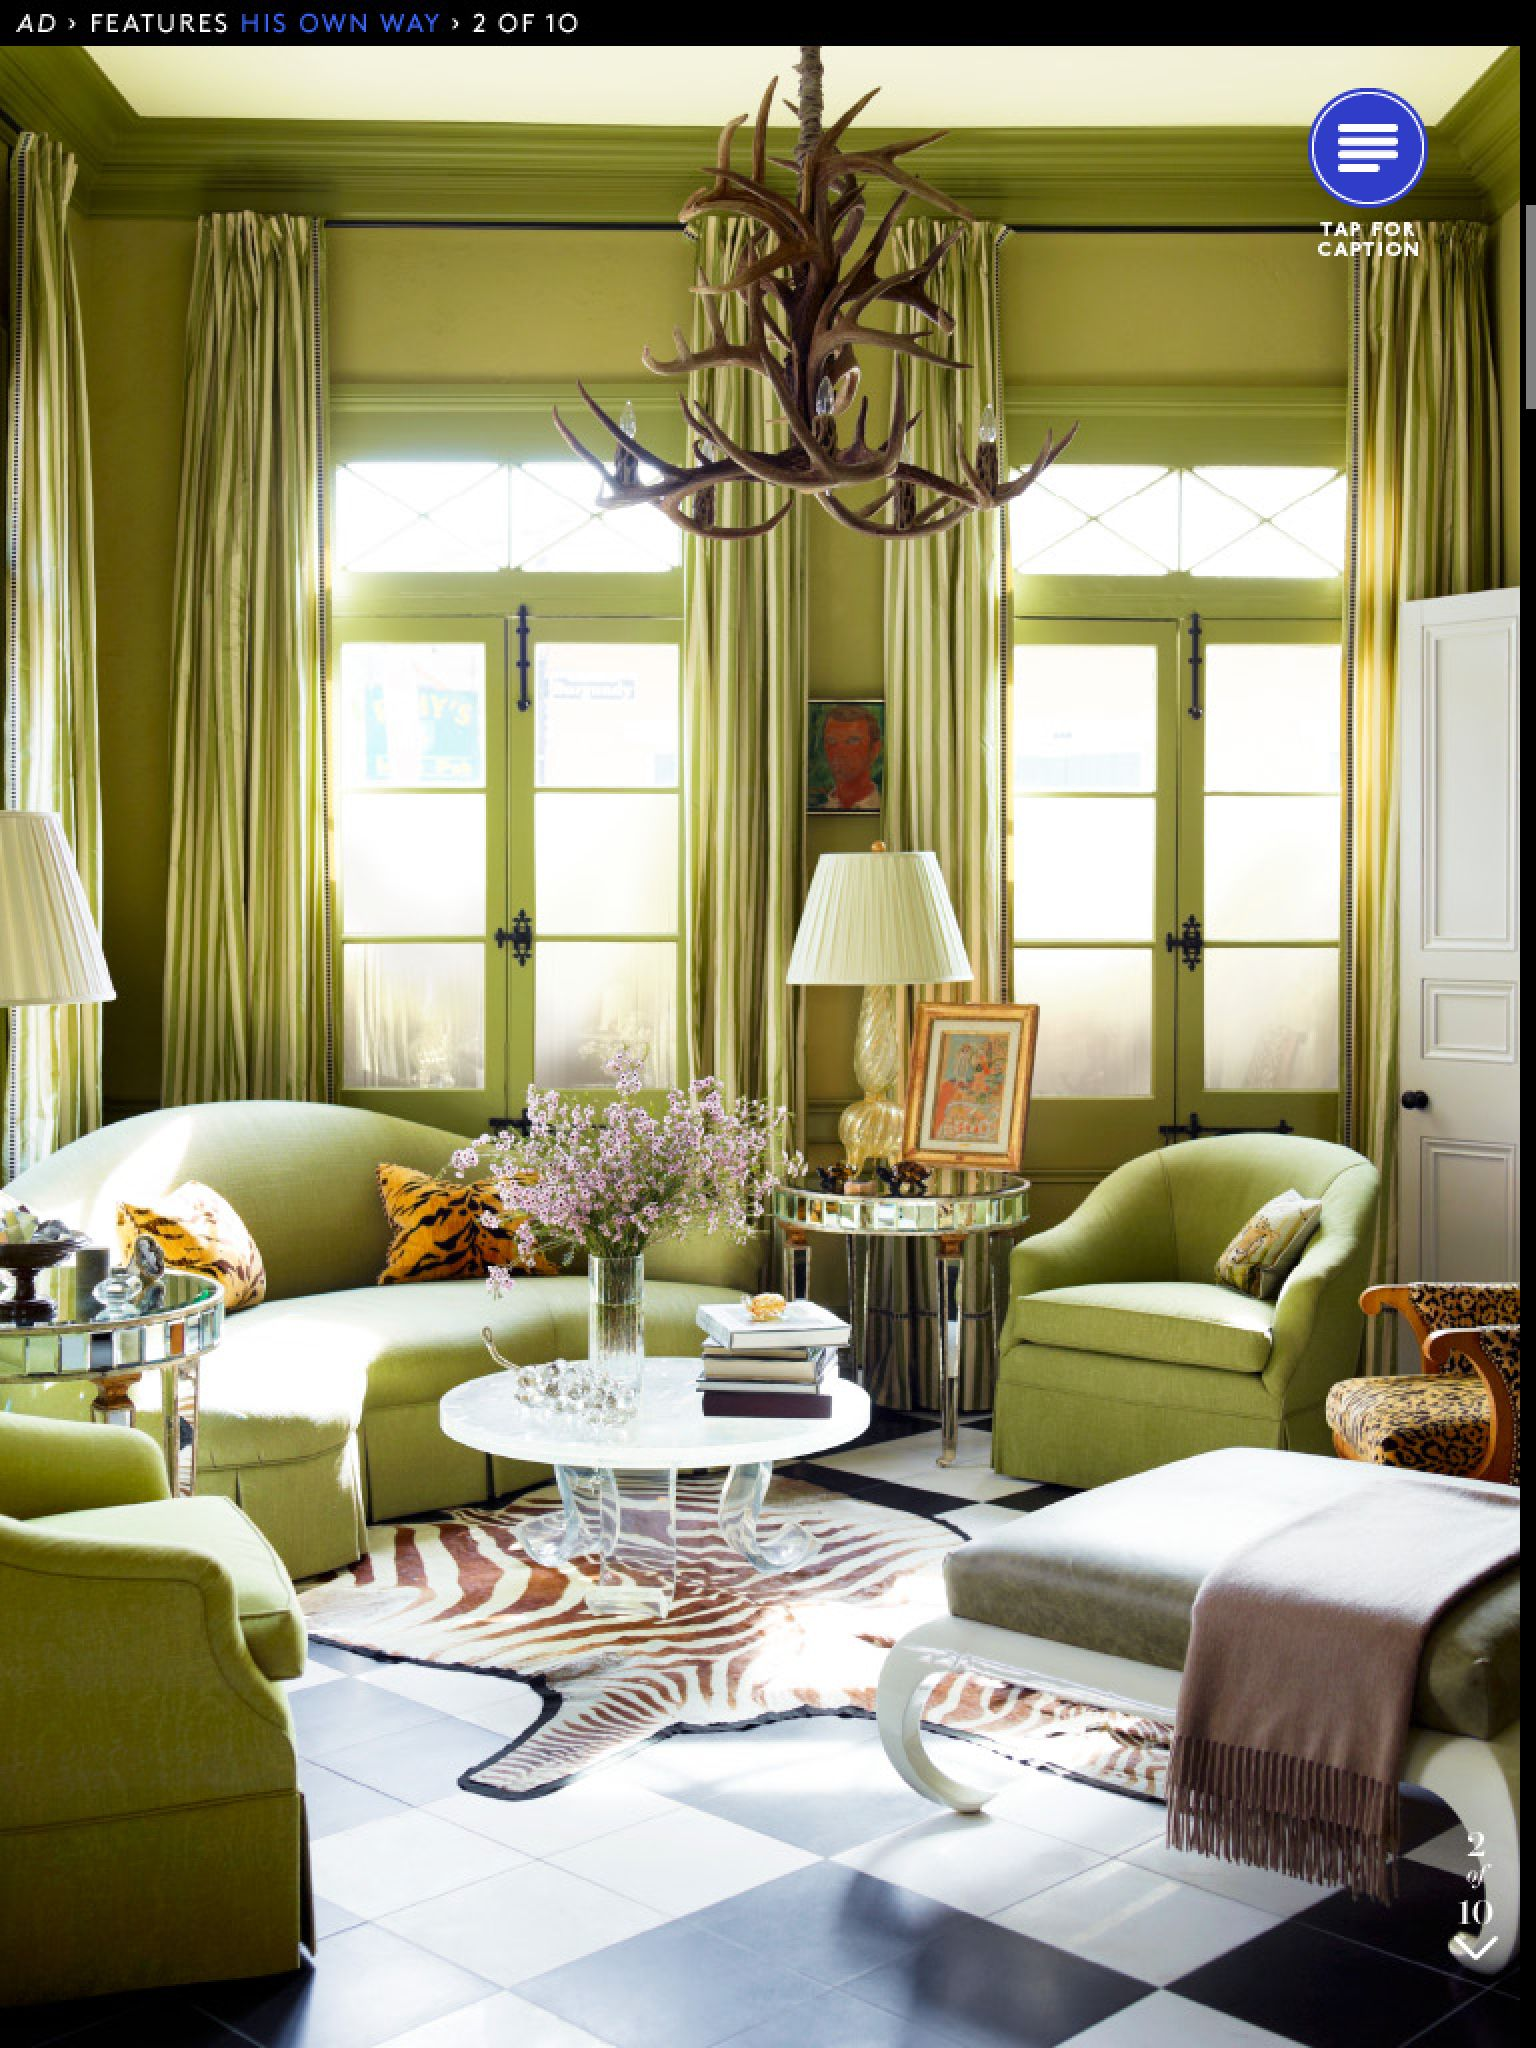 Pin by May Albinali on Living rooms   Green rooms, New ... on French Creole Decorating Ideas  id=29675